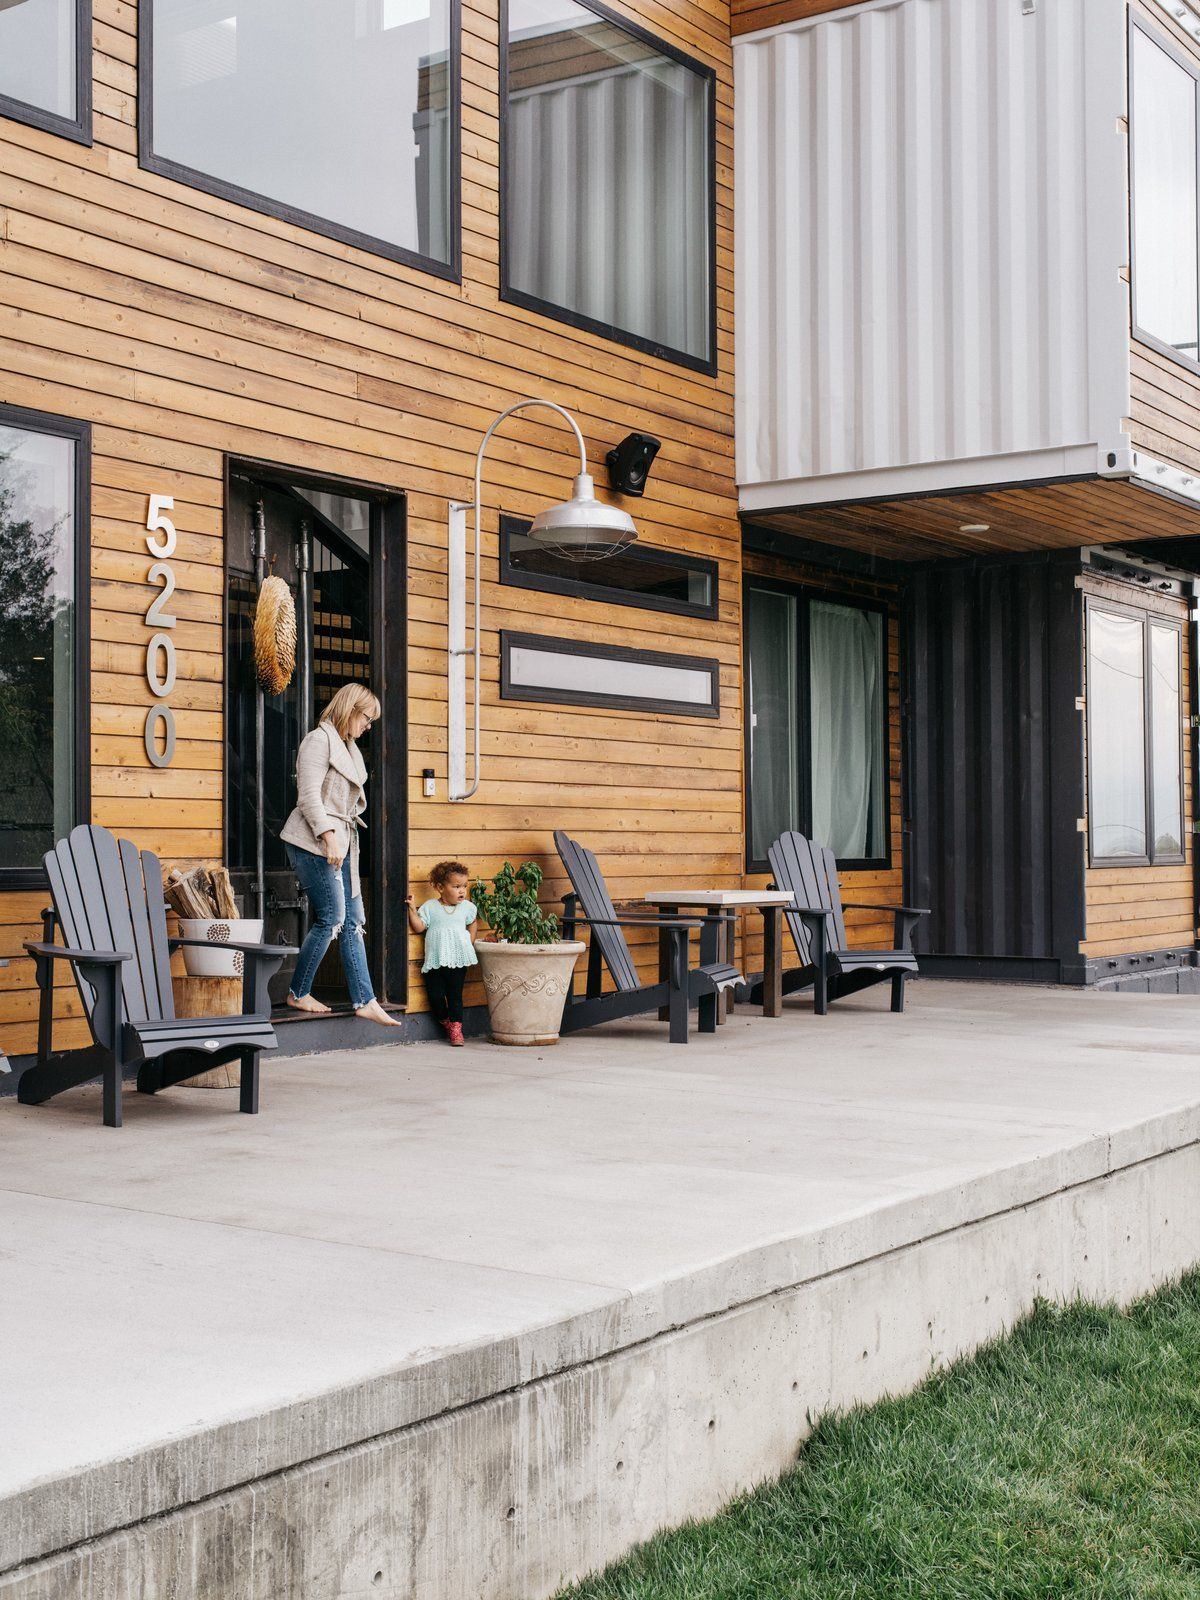 The wood-clad exterior walls give the house a very welcoming and cozy look